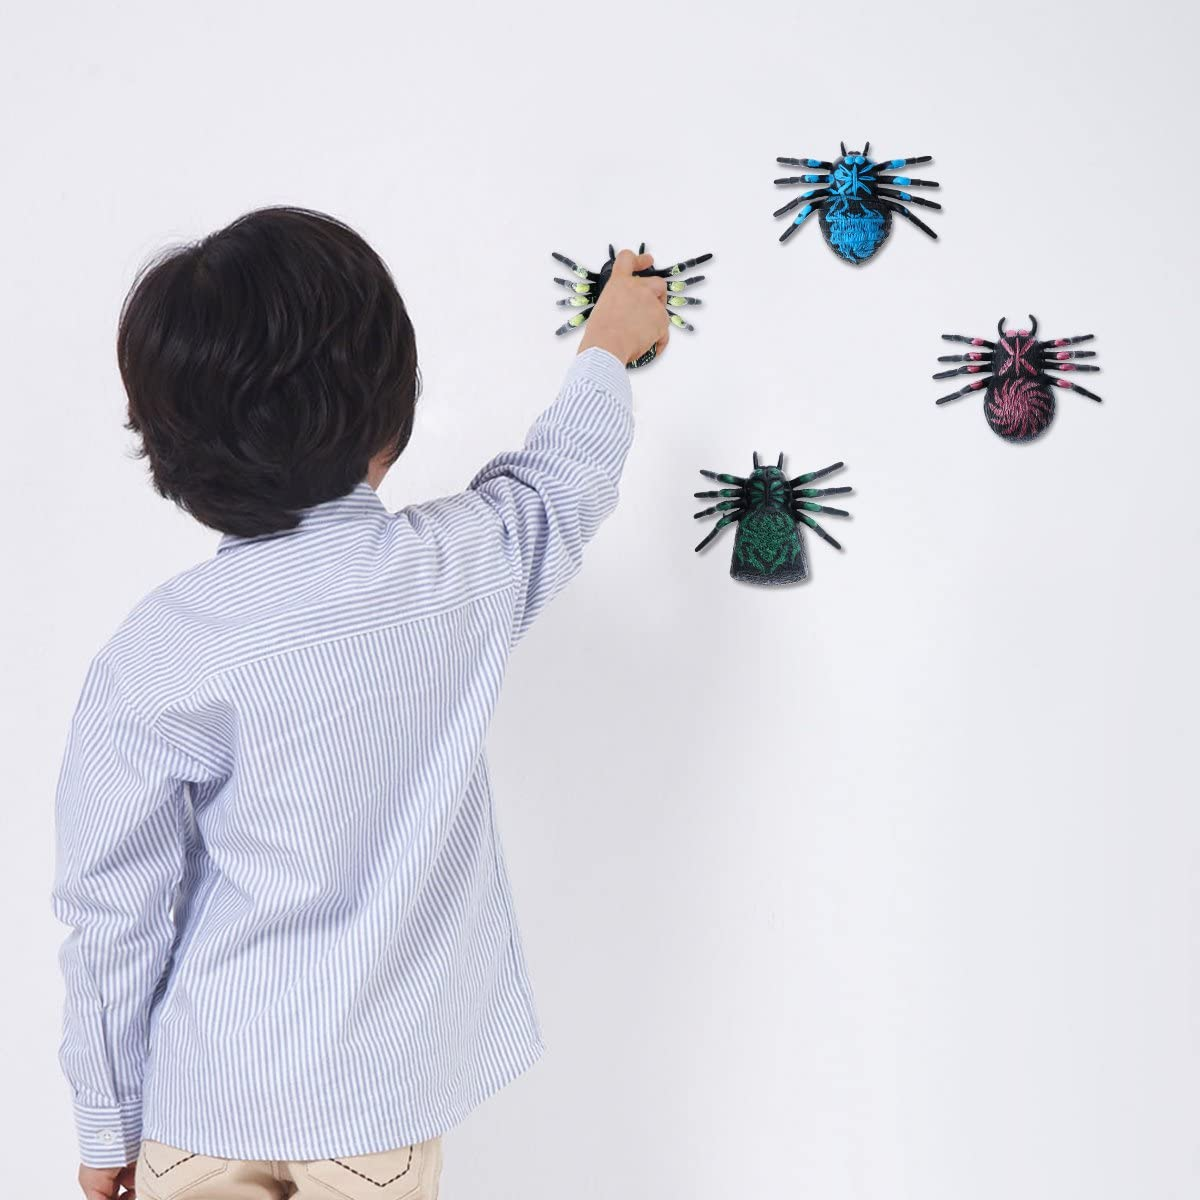 Mini Glitter Sticky Hands Toys and Sticky Spider Toys Set for Children Kids Party